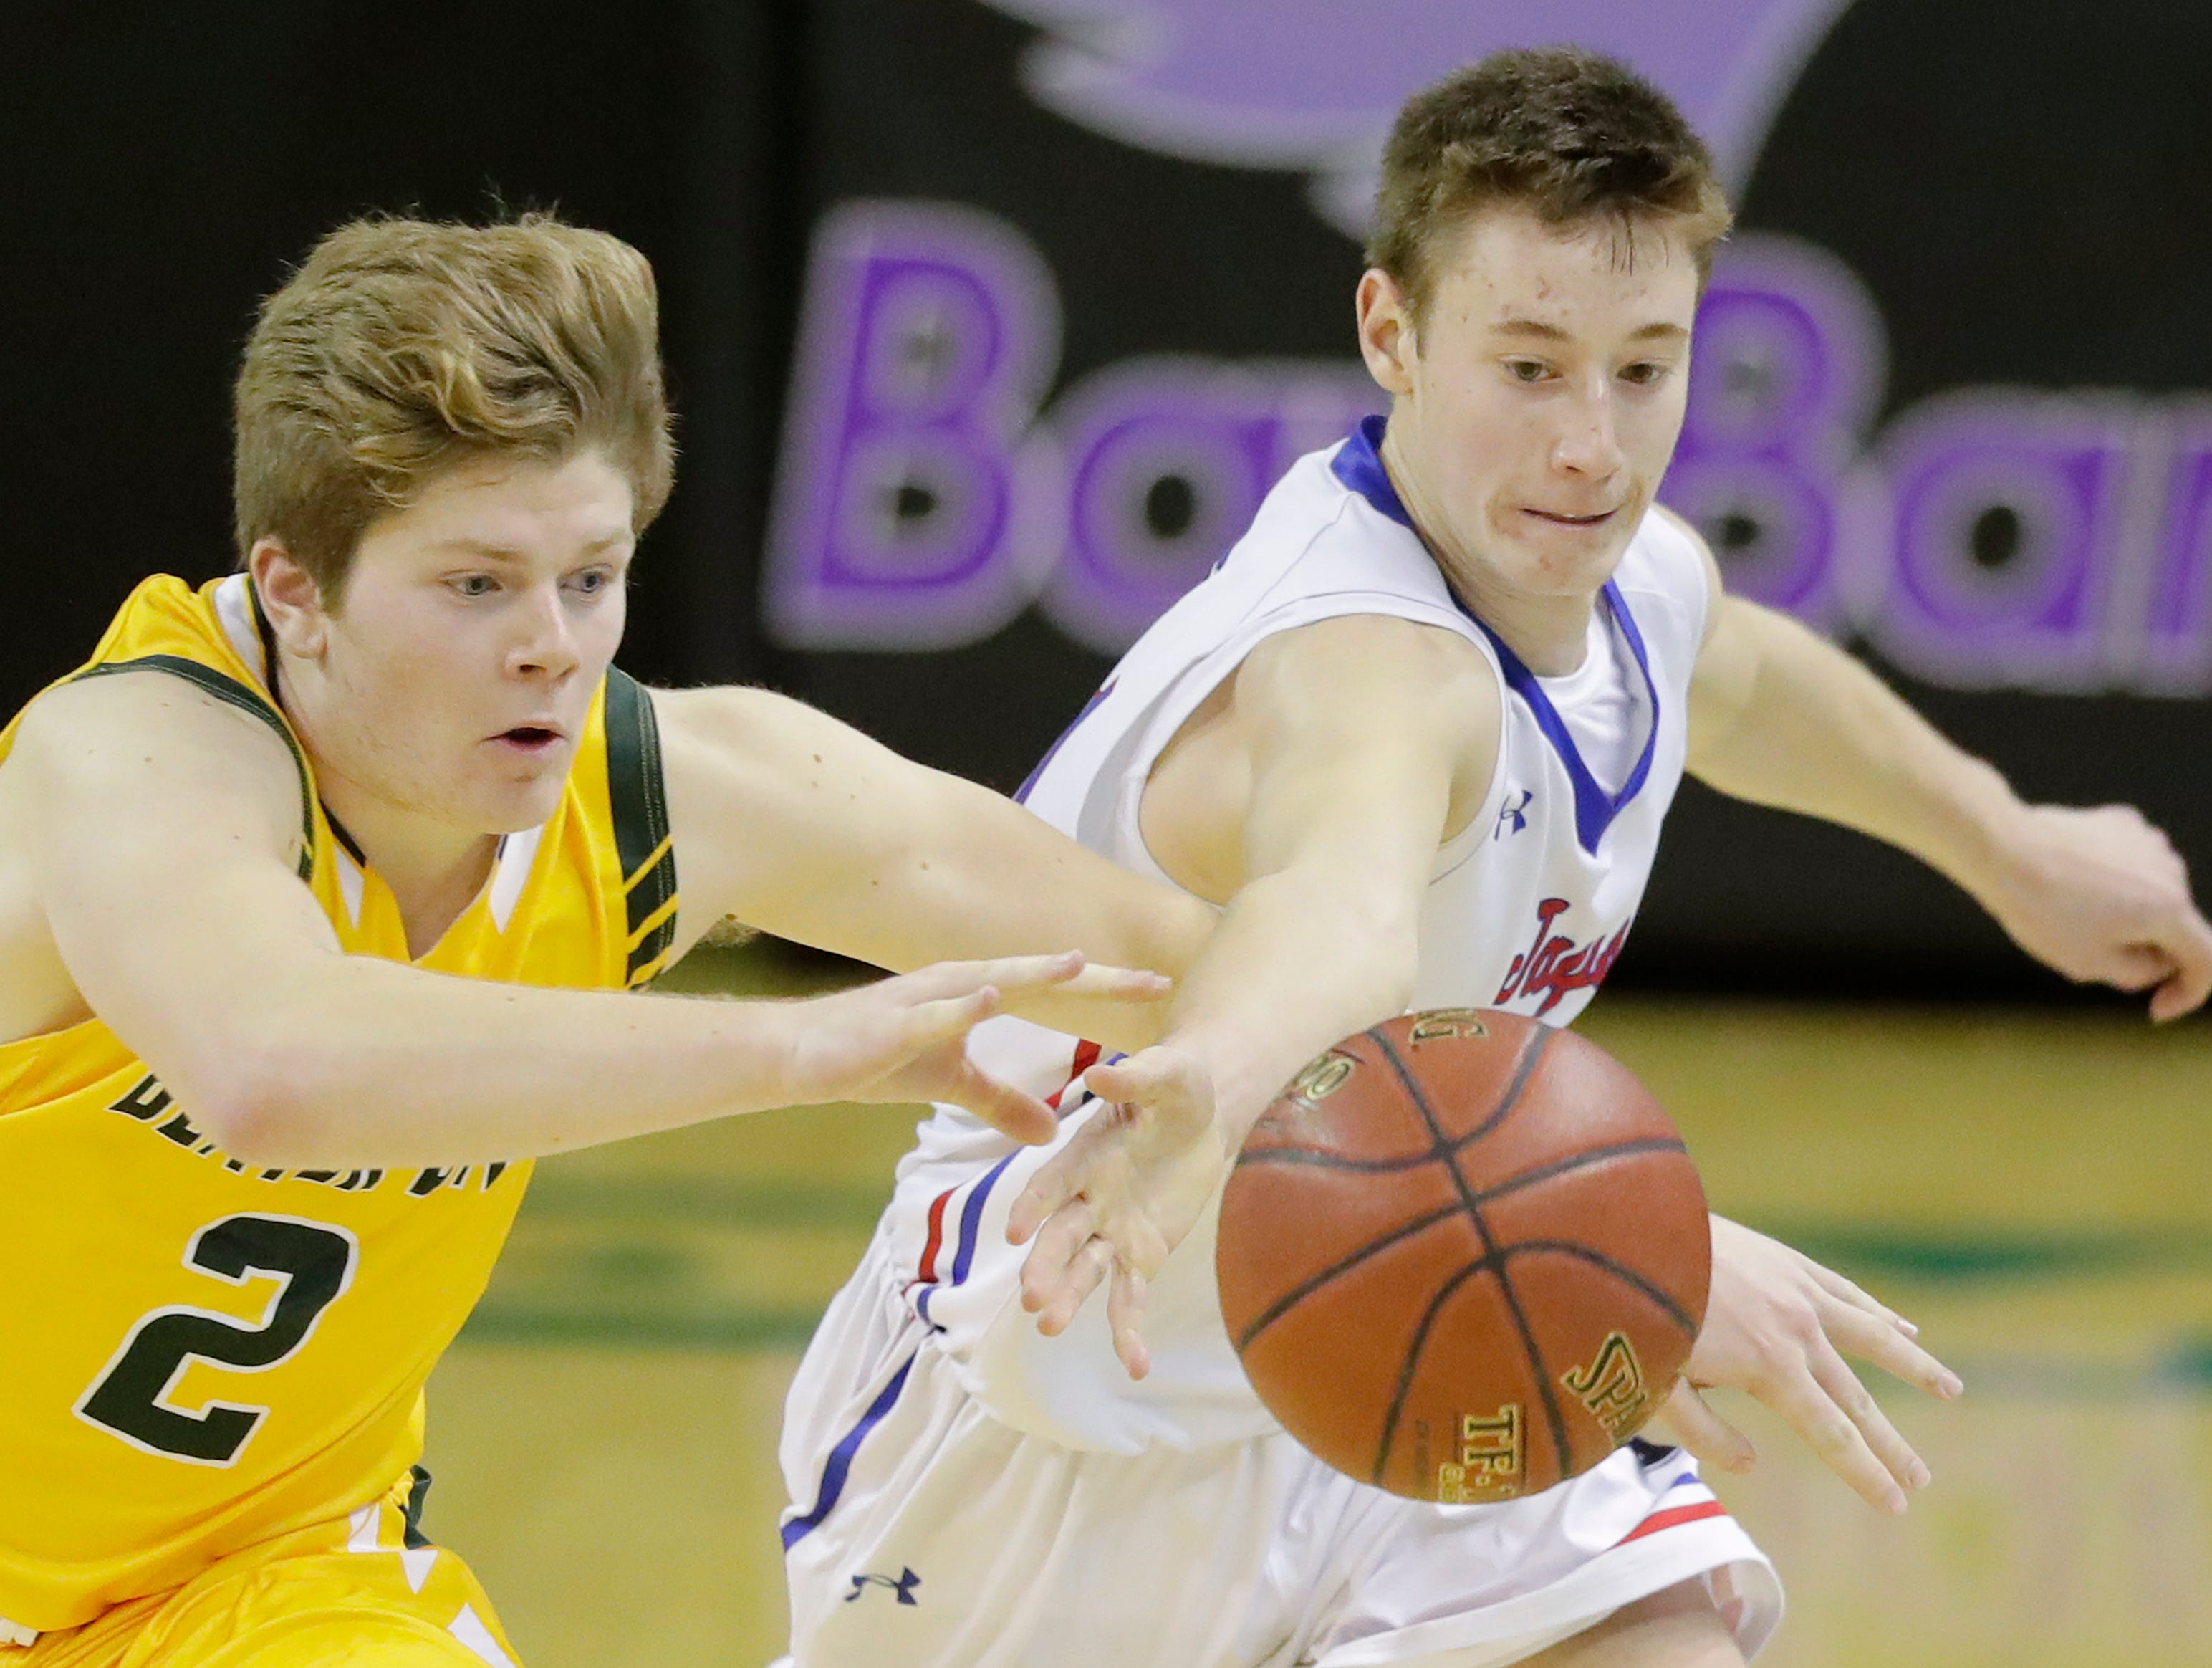 Merrill's Michael Casper (21) and Beaver Dam's Broden Boschert (2) chase down a loose ball at the Shawano Shootout at the Kress Center on Friday, December 28, 2018 in Green Bay, Wis.